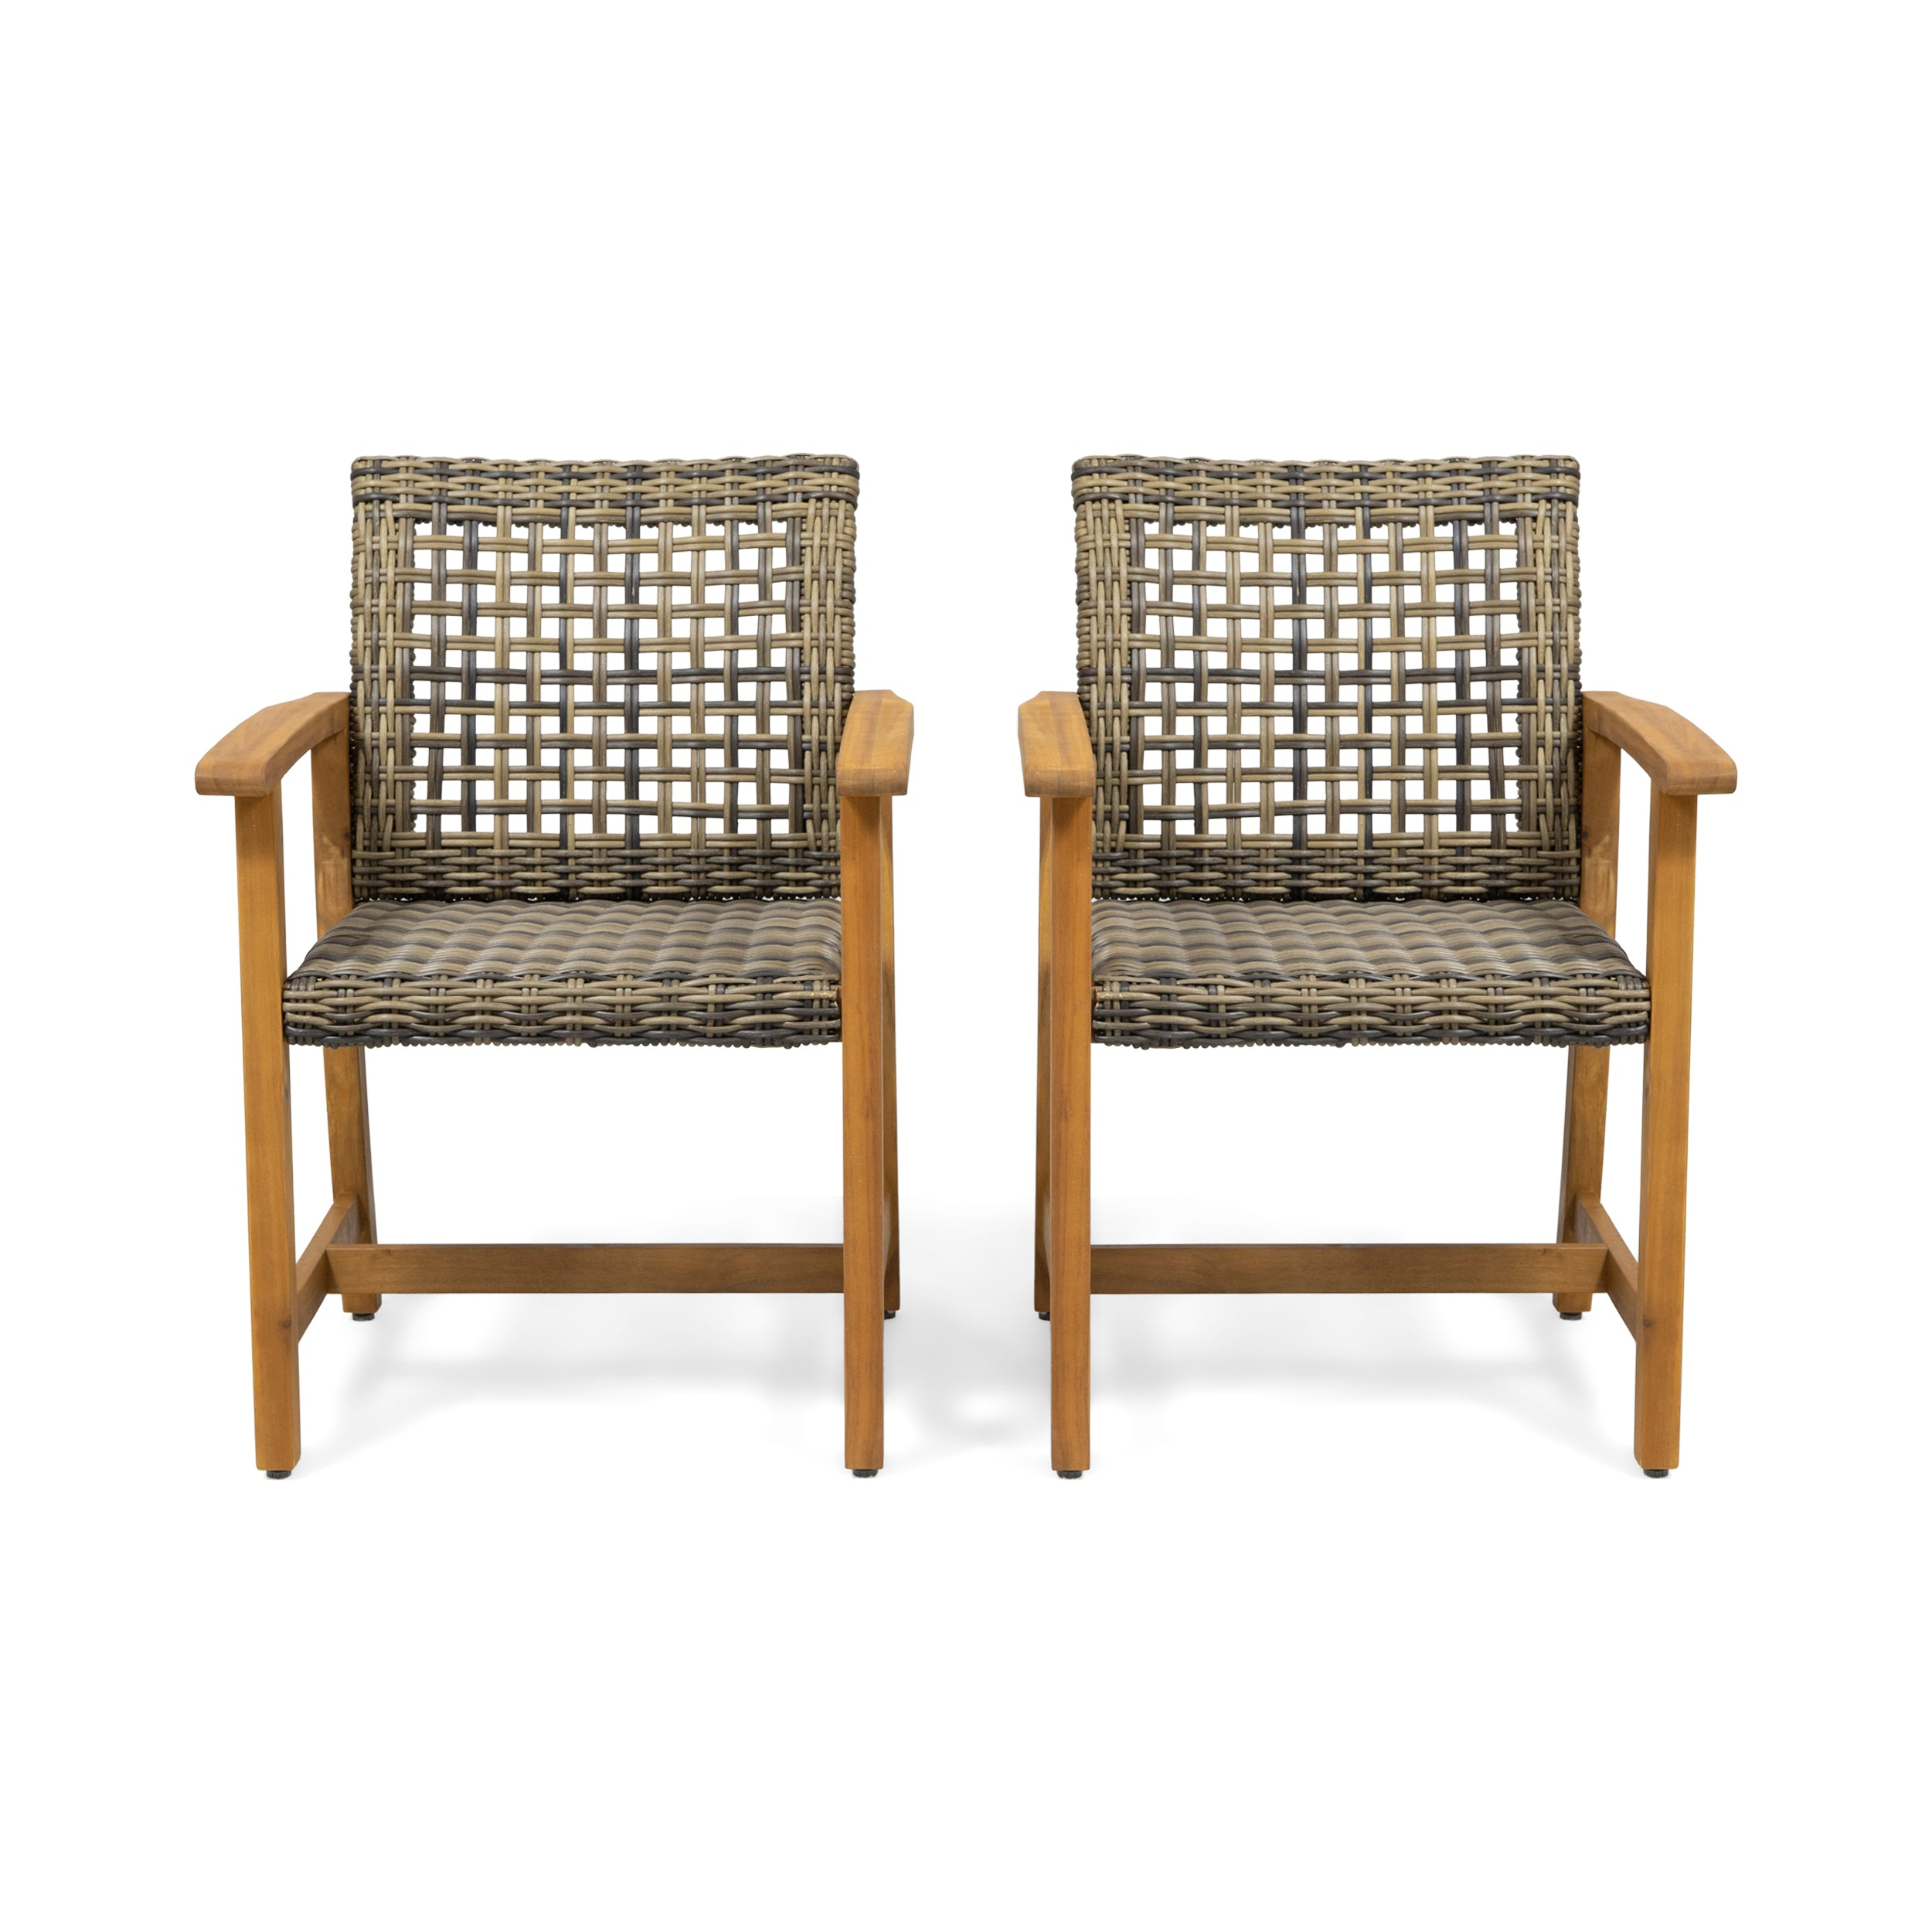 Alyssa Outdoor Acacia Wood and Wicker Dining Chair Set of 2